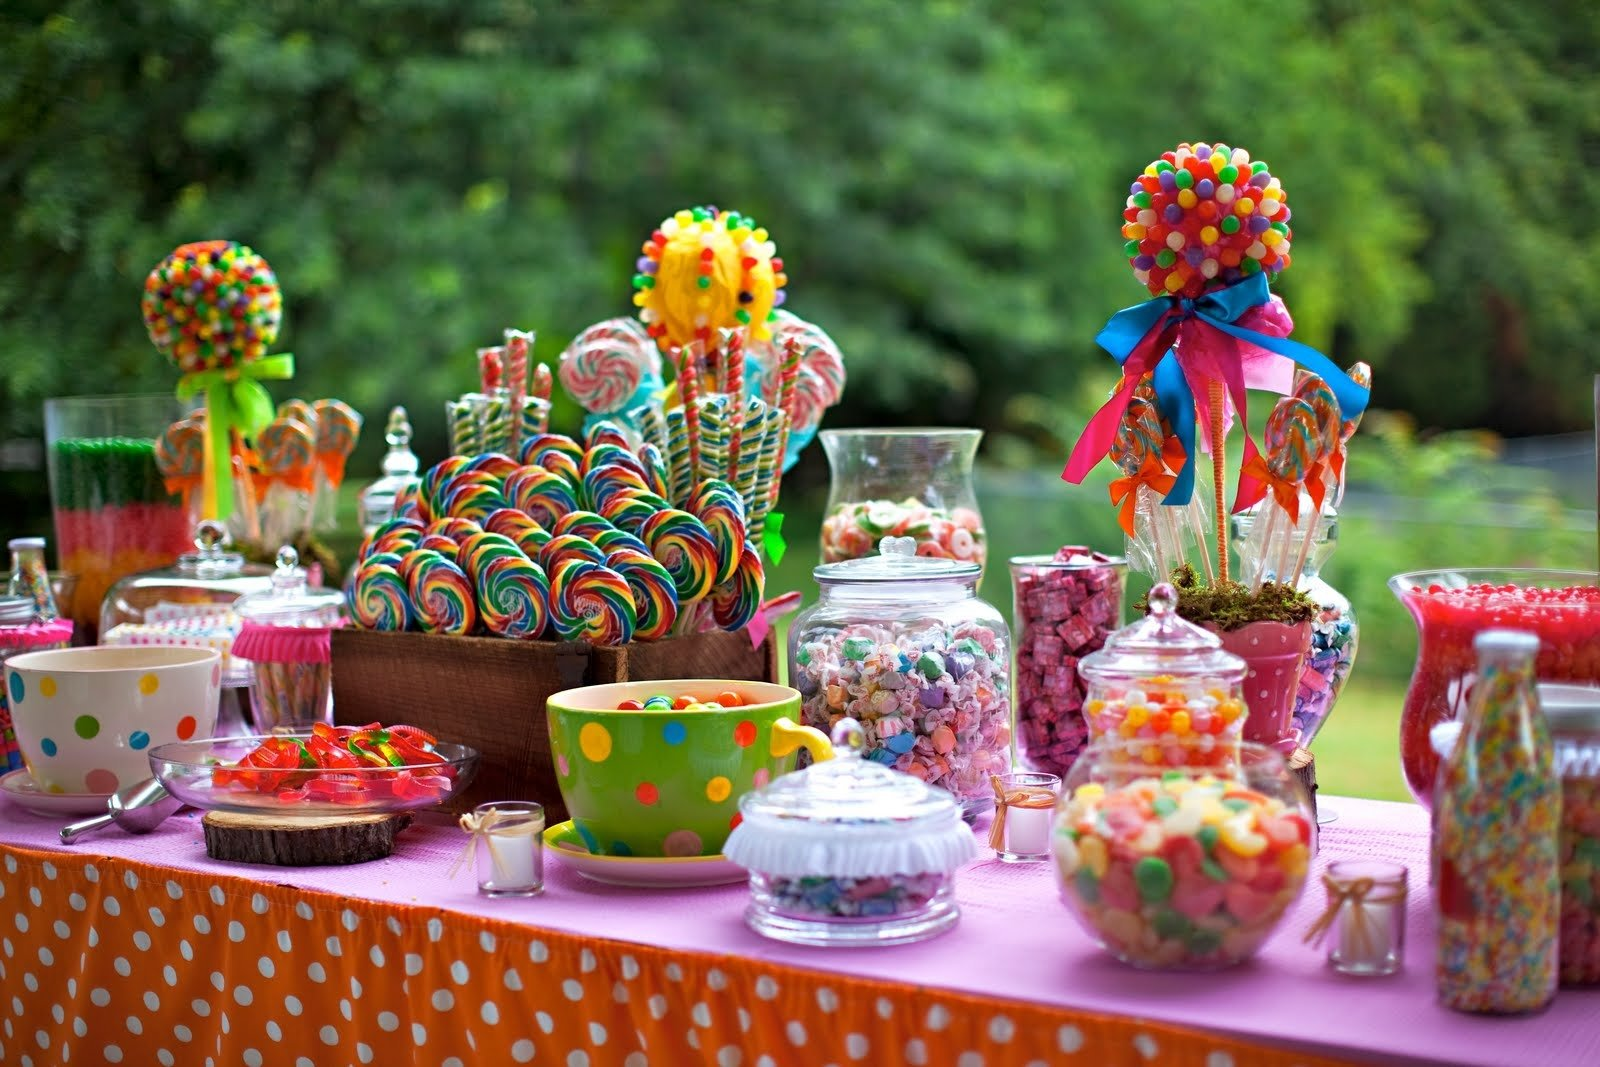 10 Famous Candy Themed Birthday Party Ideas best ideas candyland decorations interior and furnitures 5th 2020